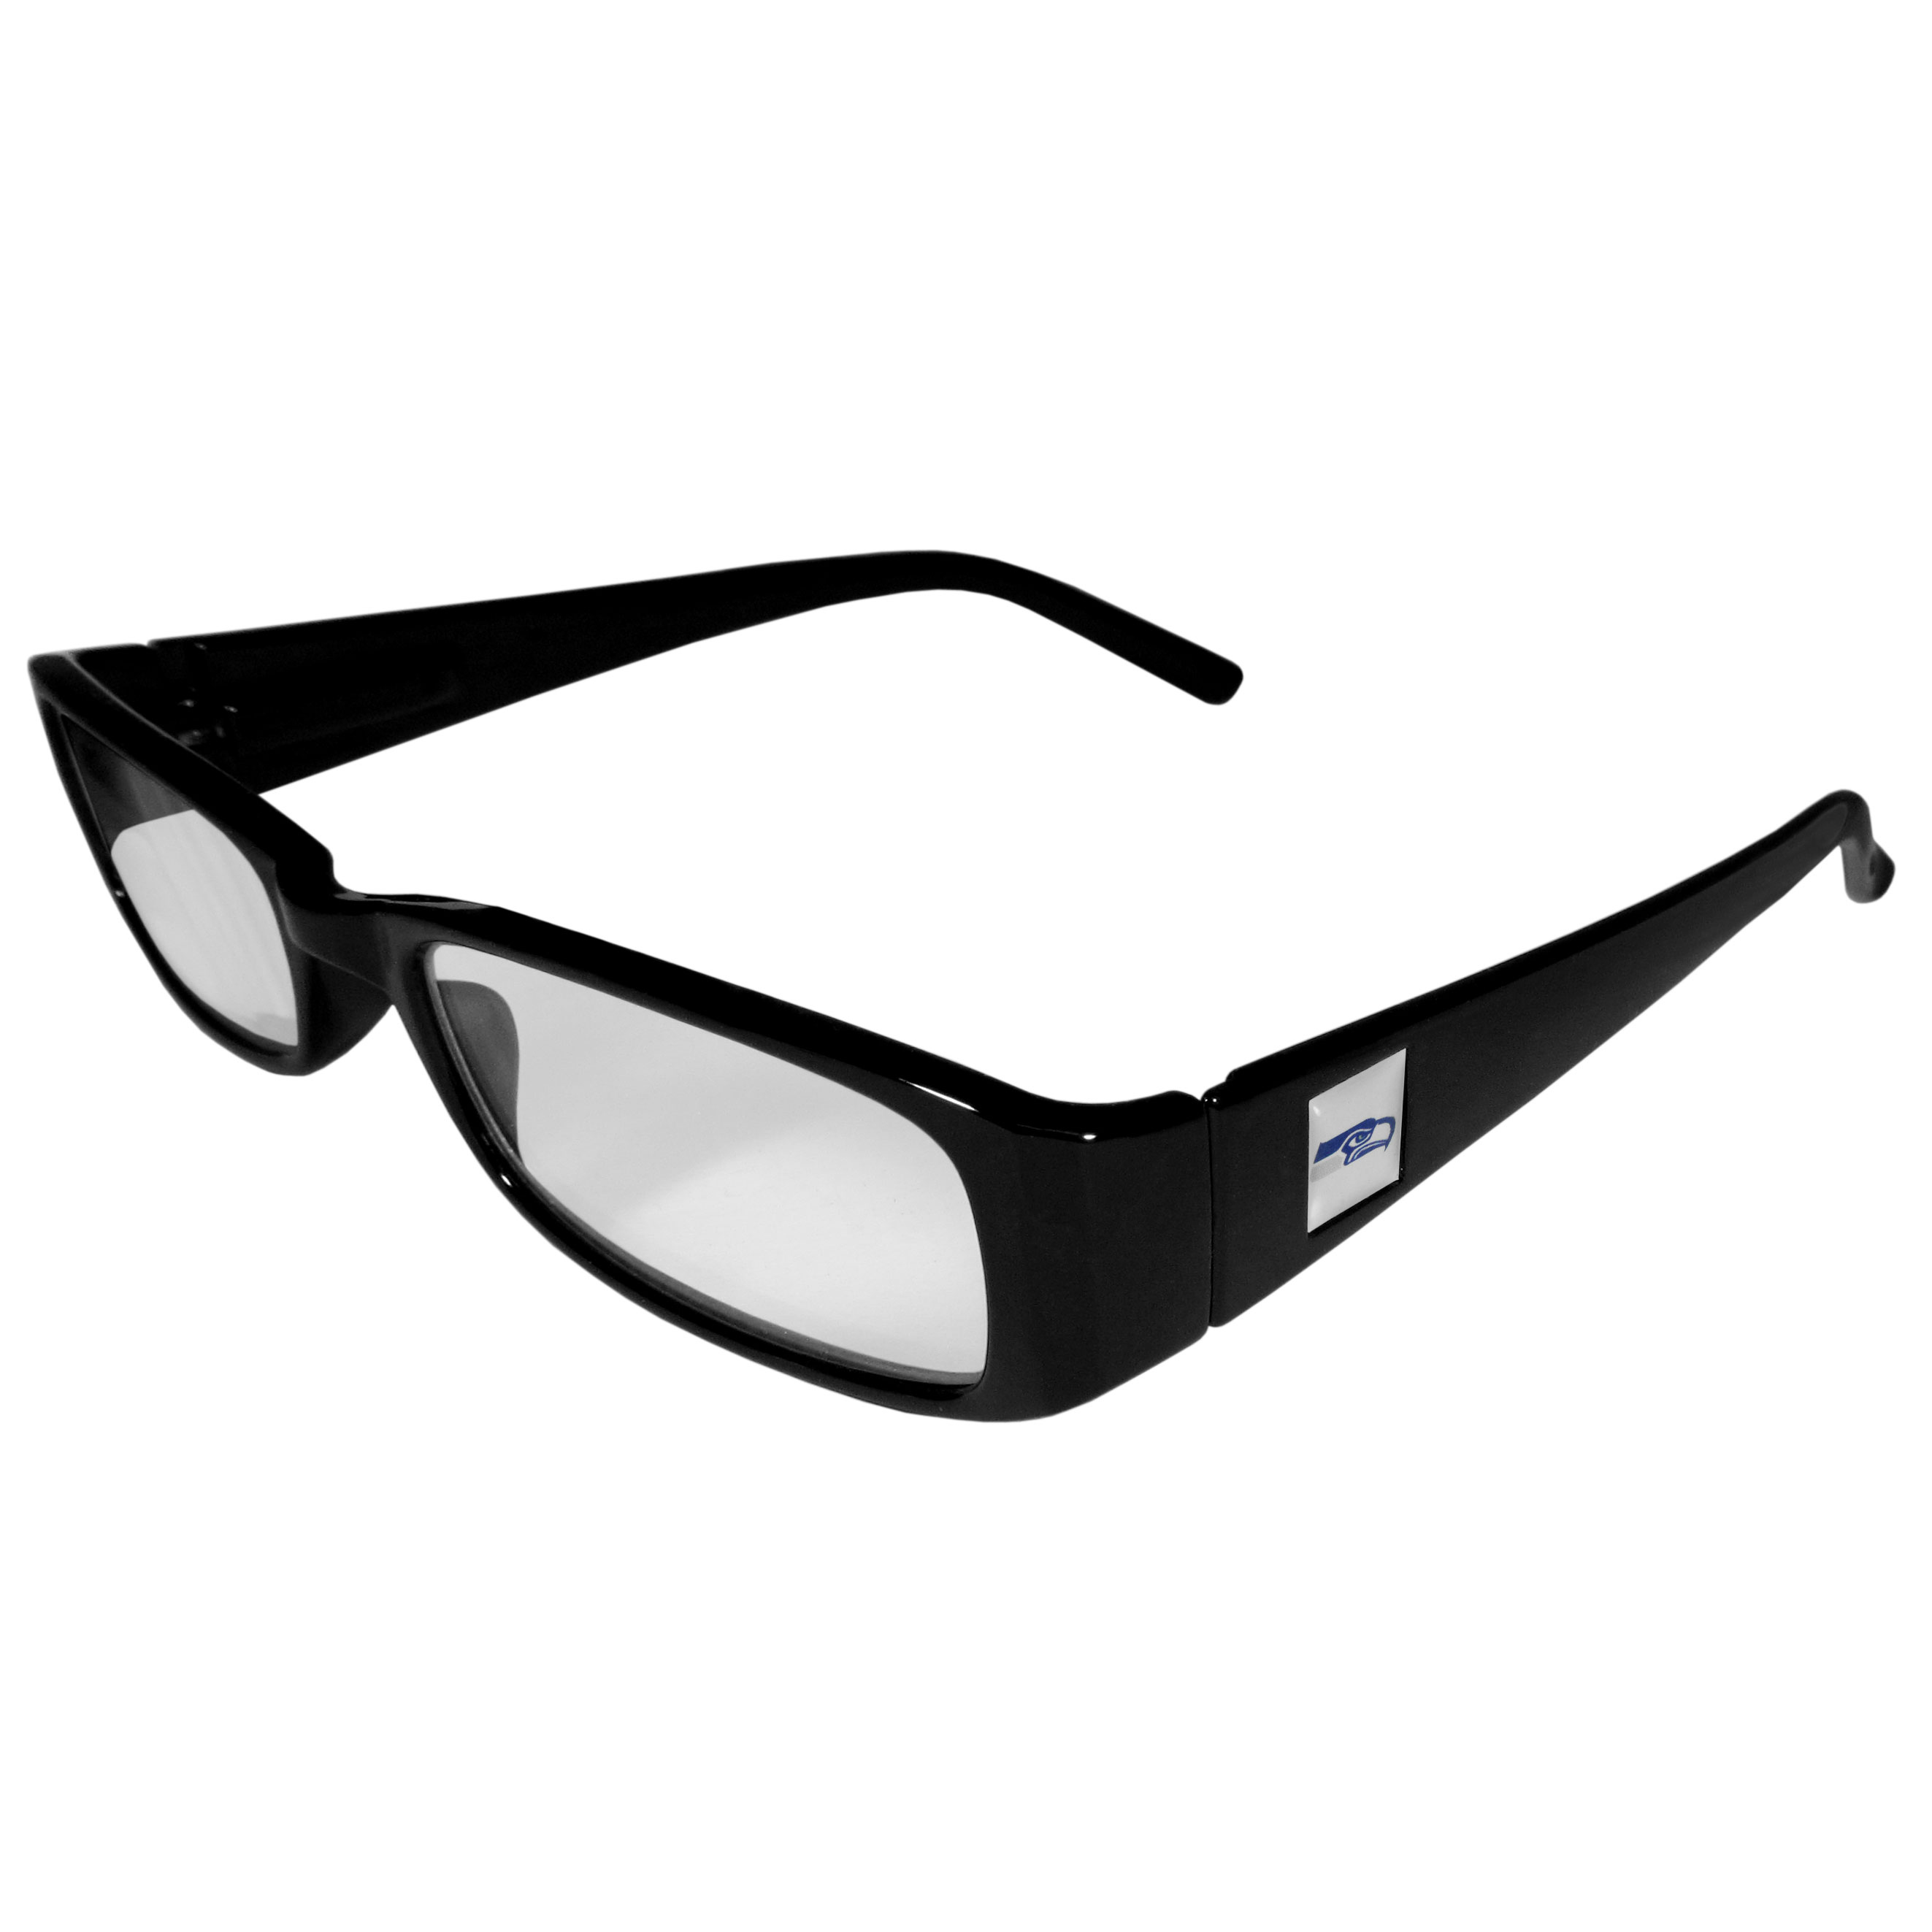 Seattle Seahawks Black Reading Glasses +1.75 - Our Seattle Seahawks reading glasses are 5.25 inches wide and feature the team logo on each arm. Magnification Power 1.75